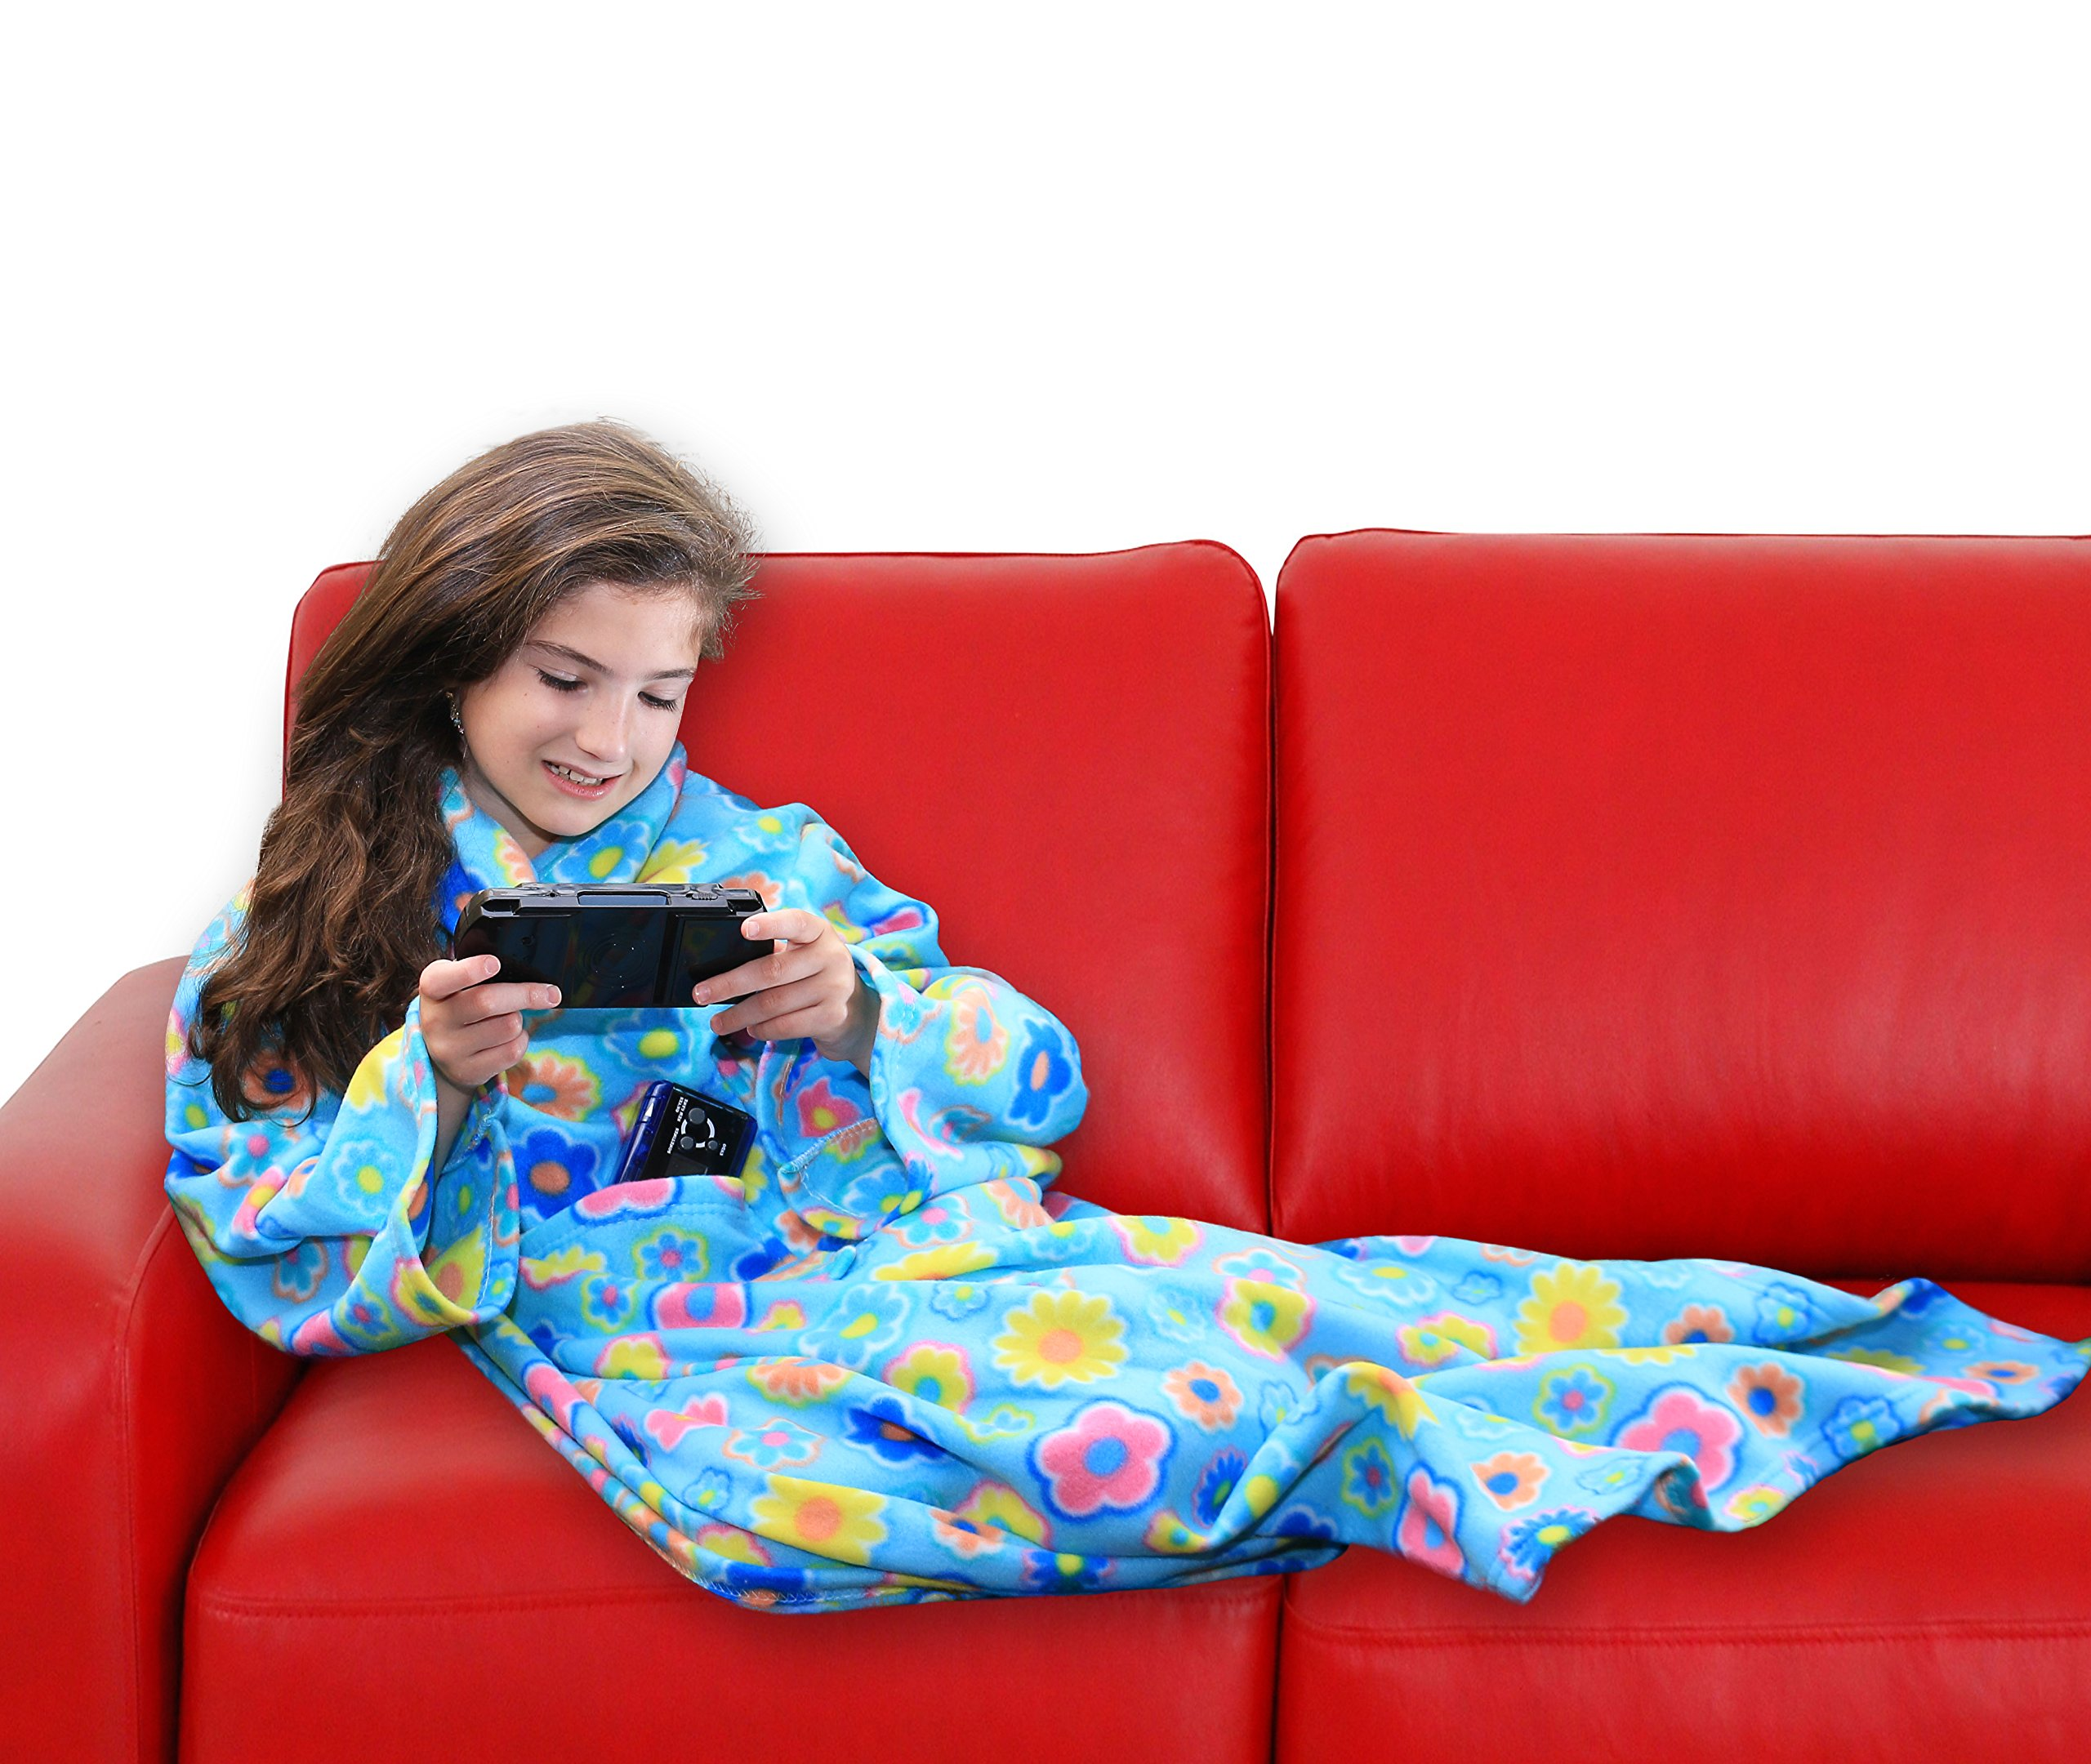 DG Sport Wearable Fleece Blanket for Kids with Sleeves and Pockets   Luxuriously Soft & Non-Irritating Fabric   Machine Washable   Cute Snuggle Couch Throw Cozy Cover for Boys and Girls (FLOWR)